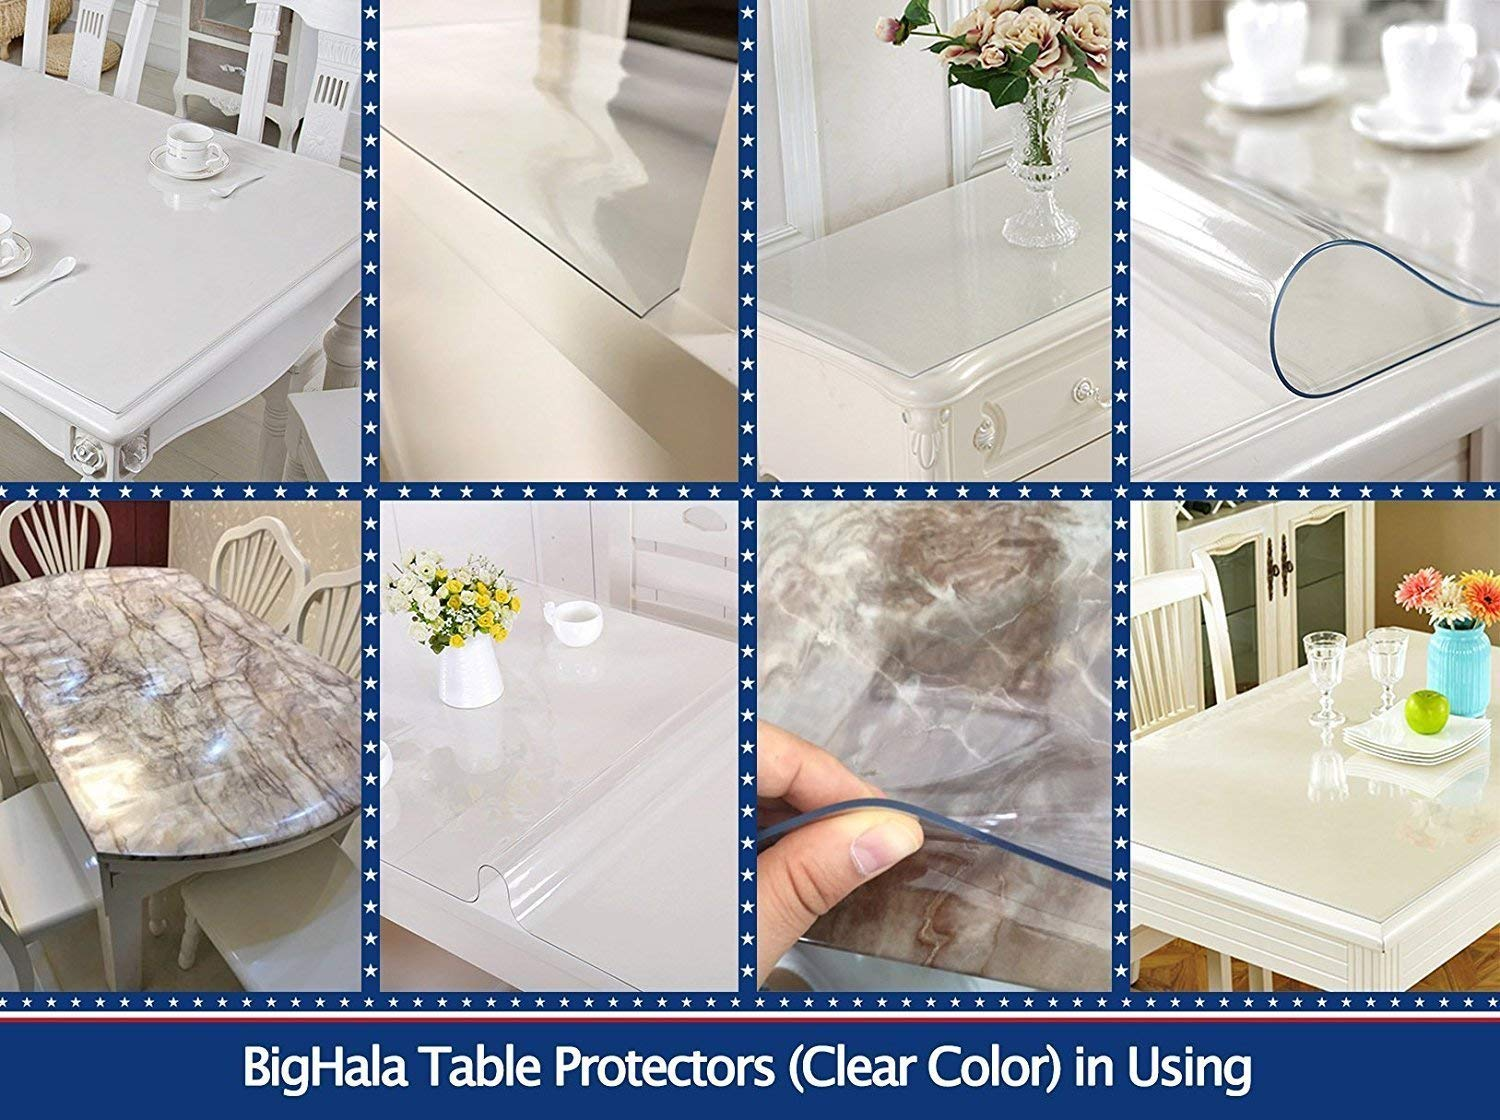 36 X 60 Inch Clear Plastic Tablecloth Table Protector Eco Thicken Protective Desk Blotter Mat Cover Waterproof Wipeable Tablecloth Roll Easy Clean PVC Vinyl Dining Coffee Tabletop Protection Liner Pad by BigHala (Image #6)